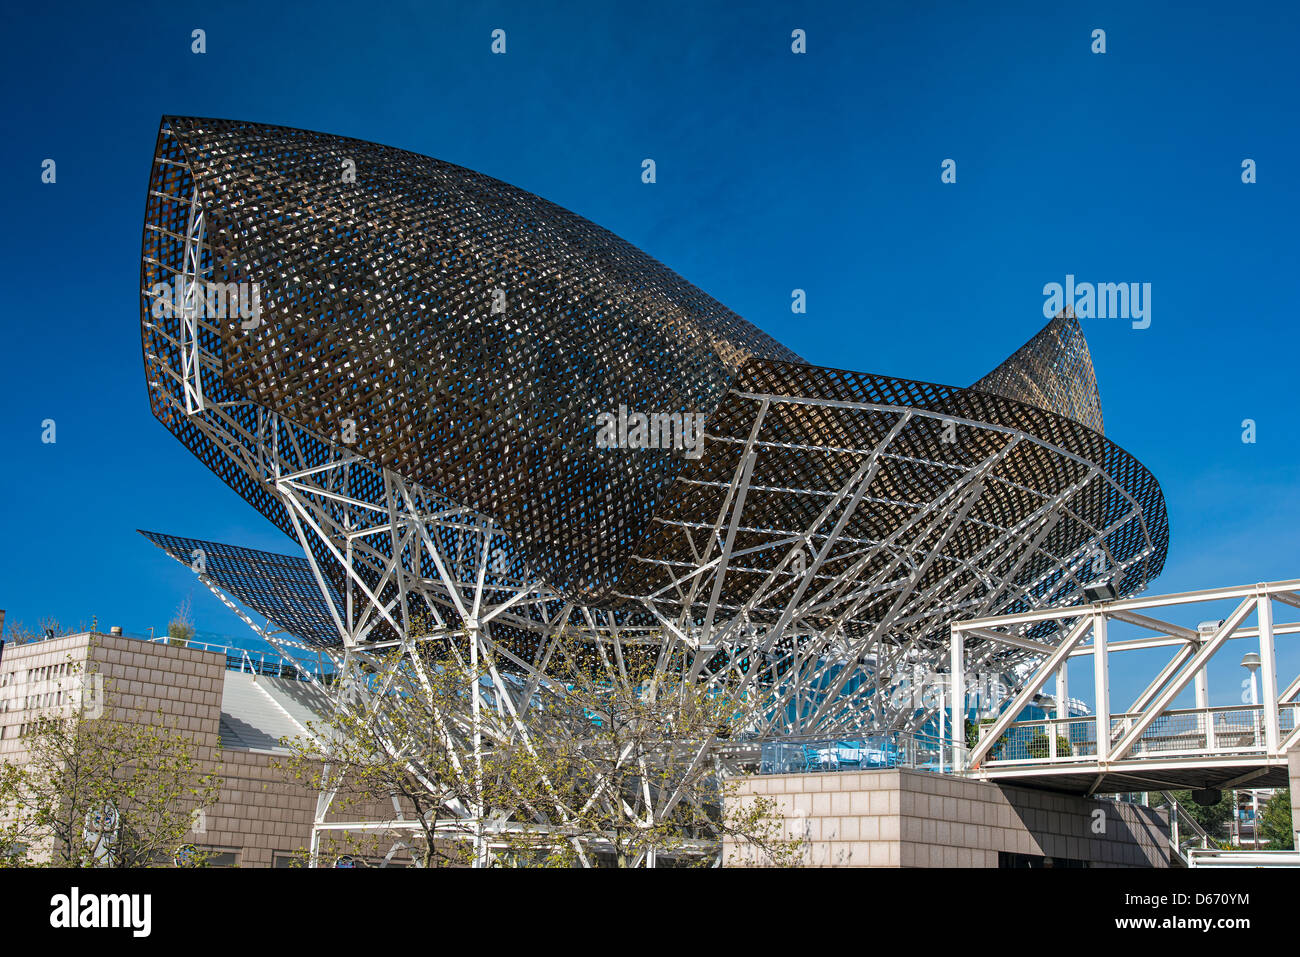 Peix Fish sculpture realized by Frank Gehry, Port Olimpic, Barcelona, Catalonia, Spain - Stock Image